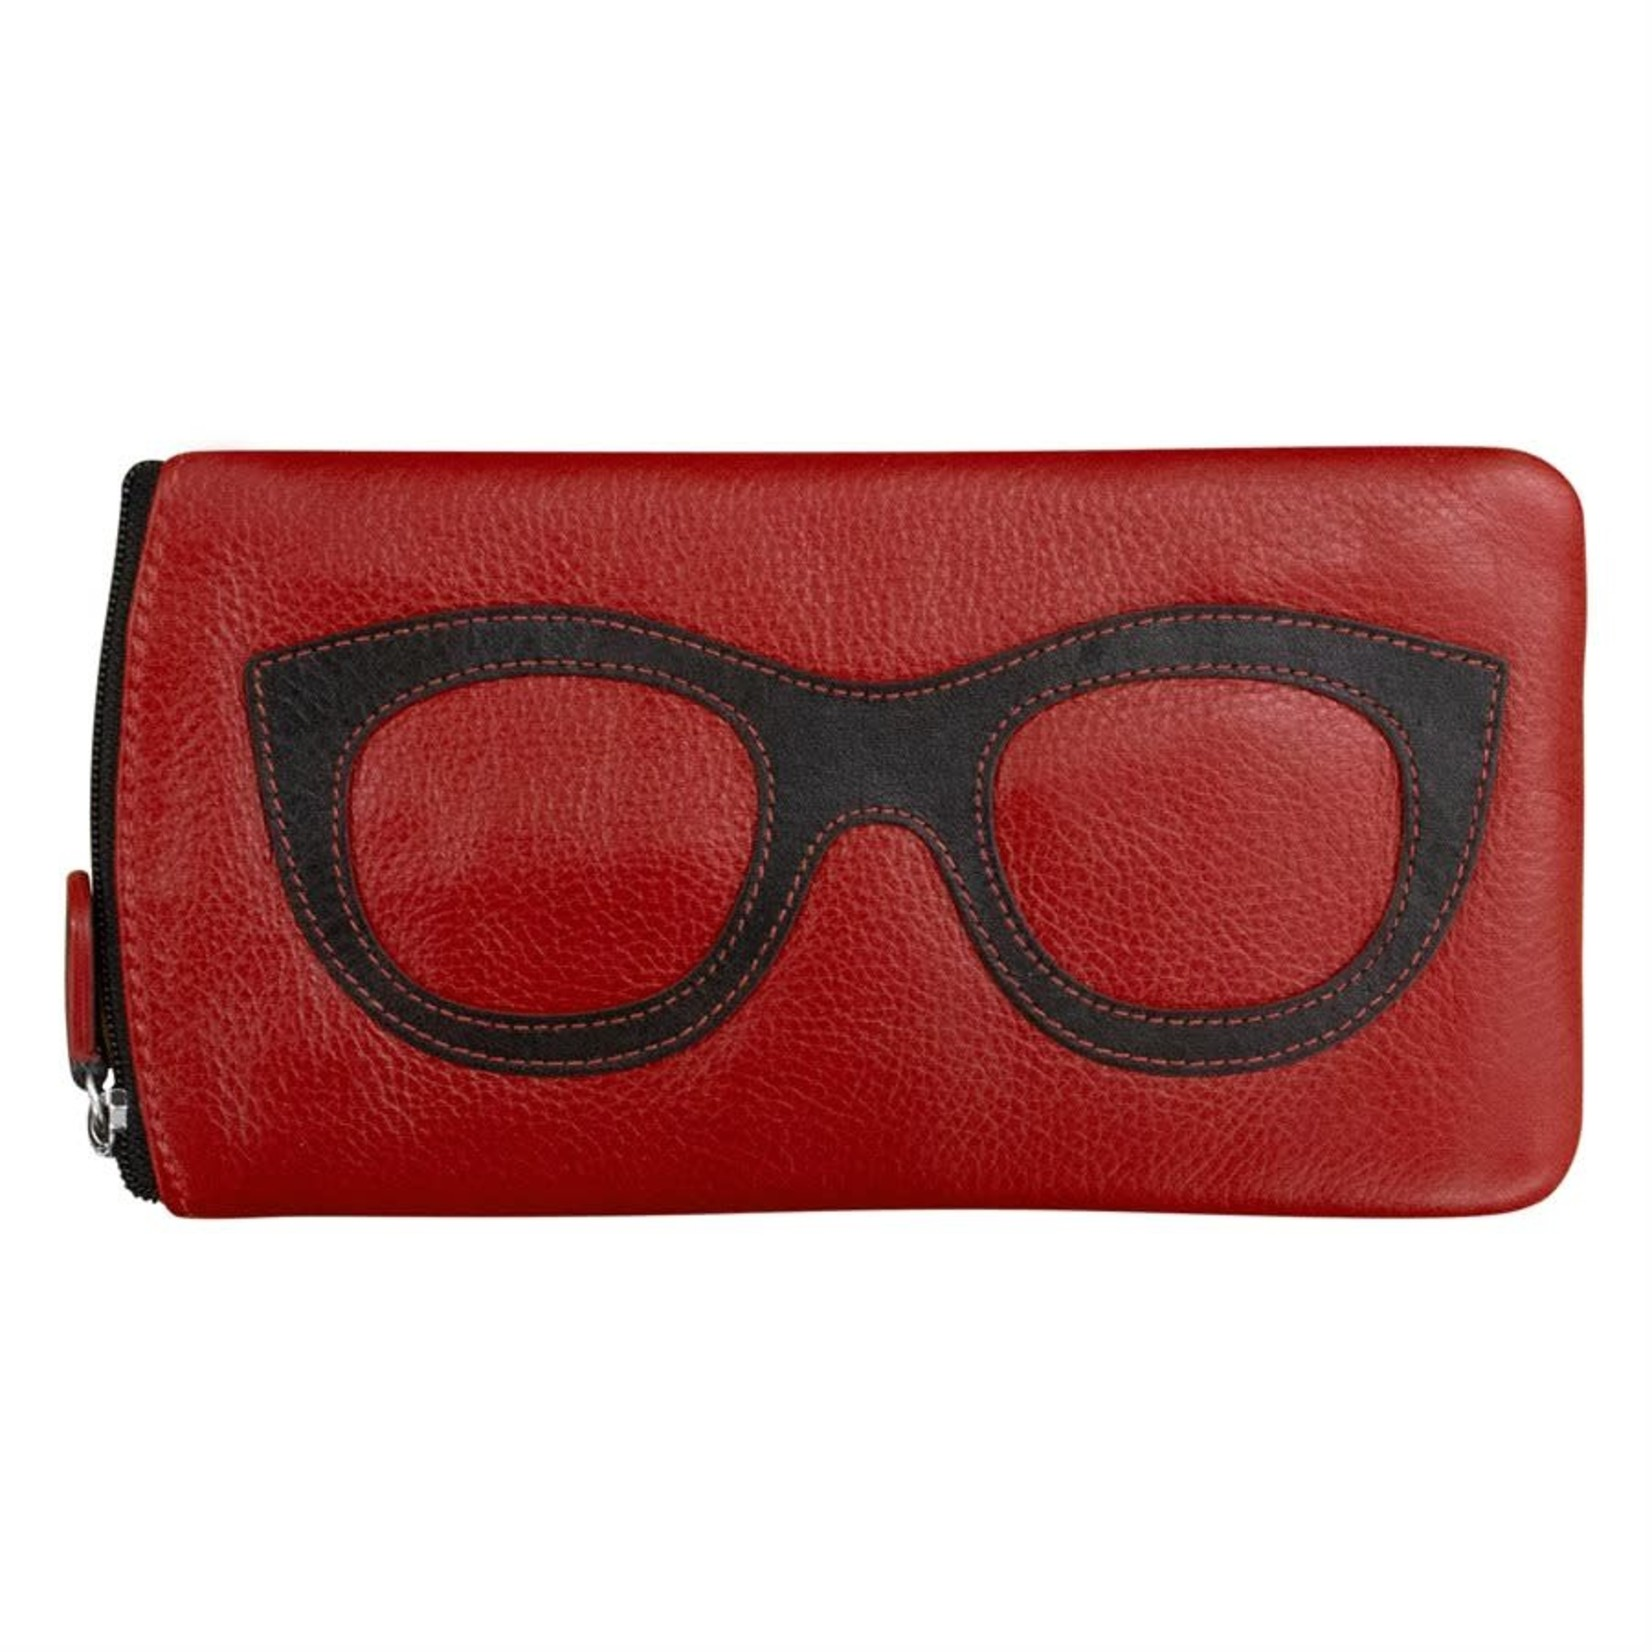 Leather Handbags and Accessories 6462 Red/Black - Leather Eyeglass Case